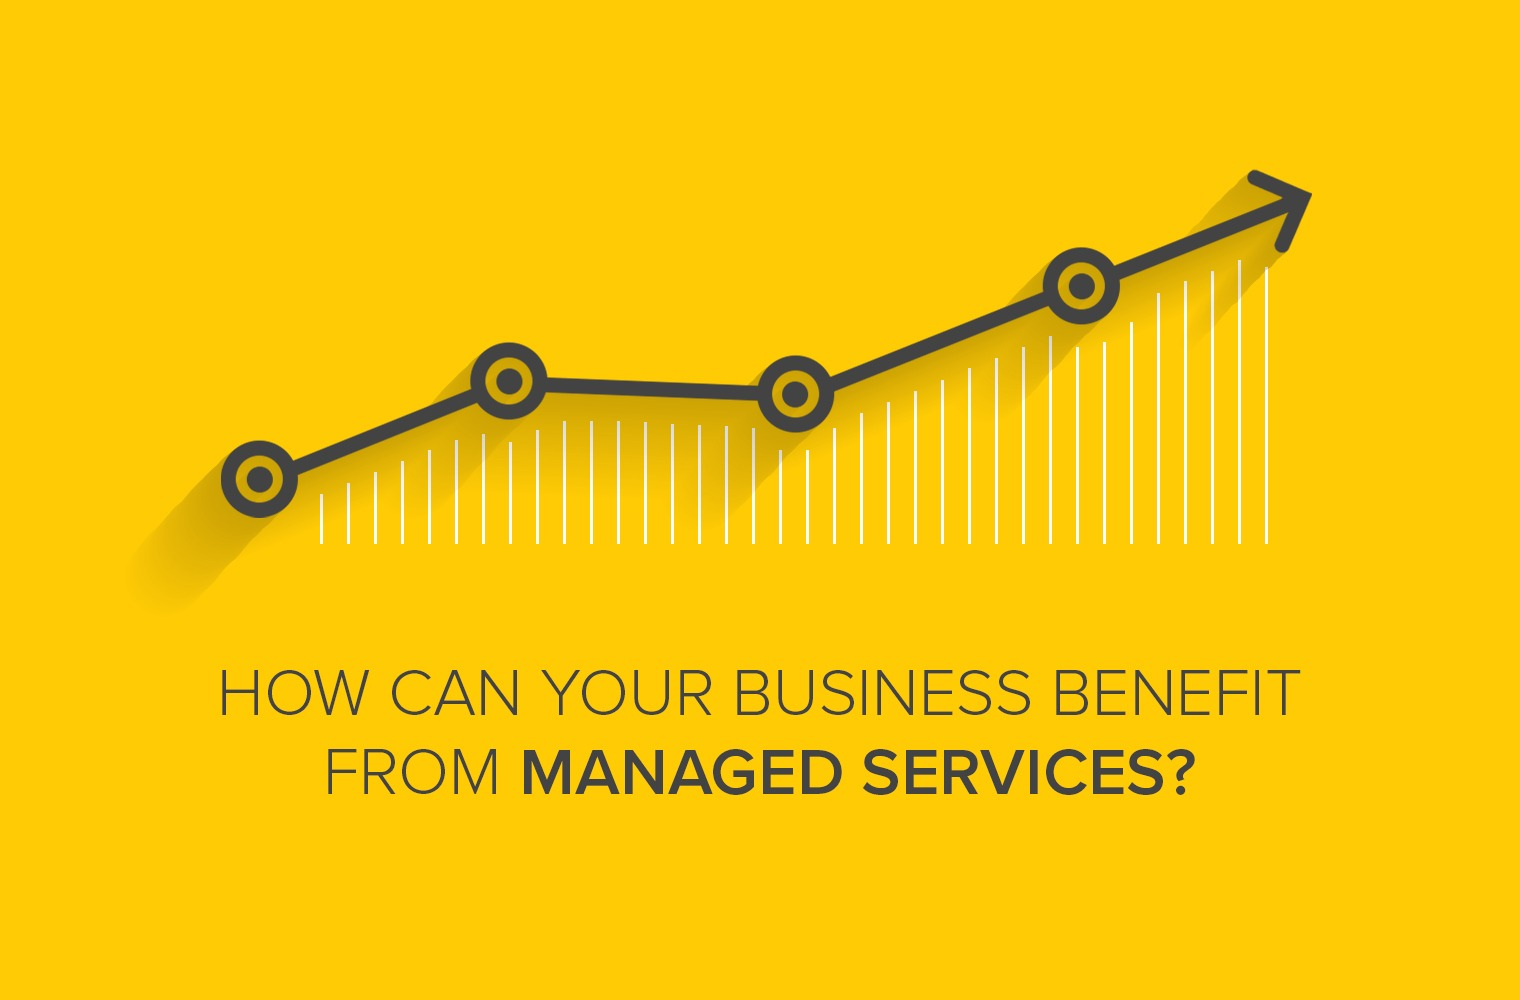 How Can Your Business Benefit From Managed Services?